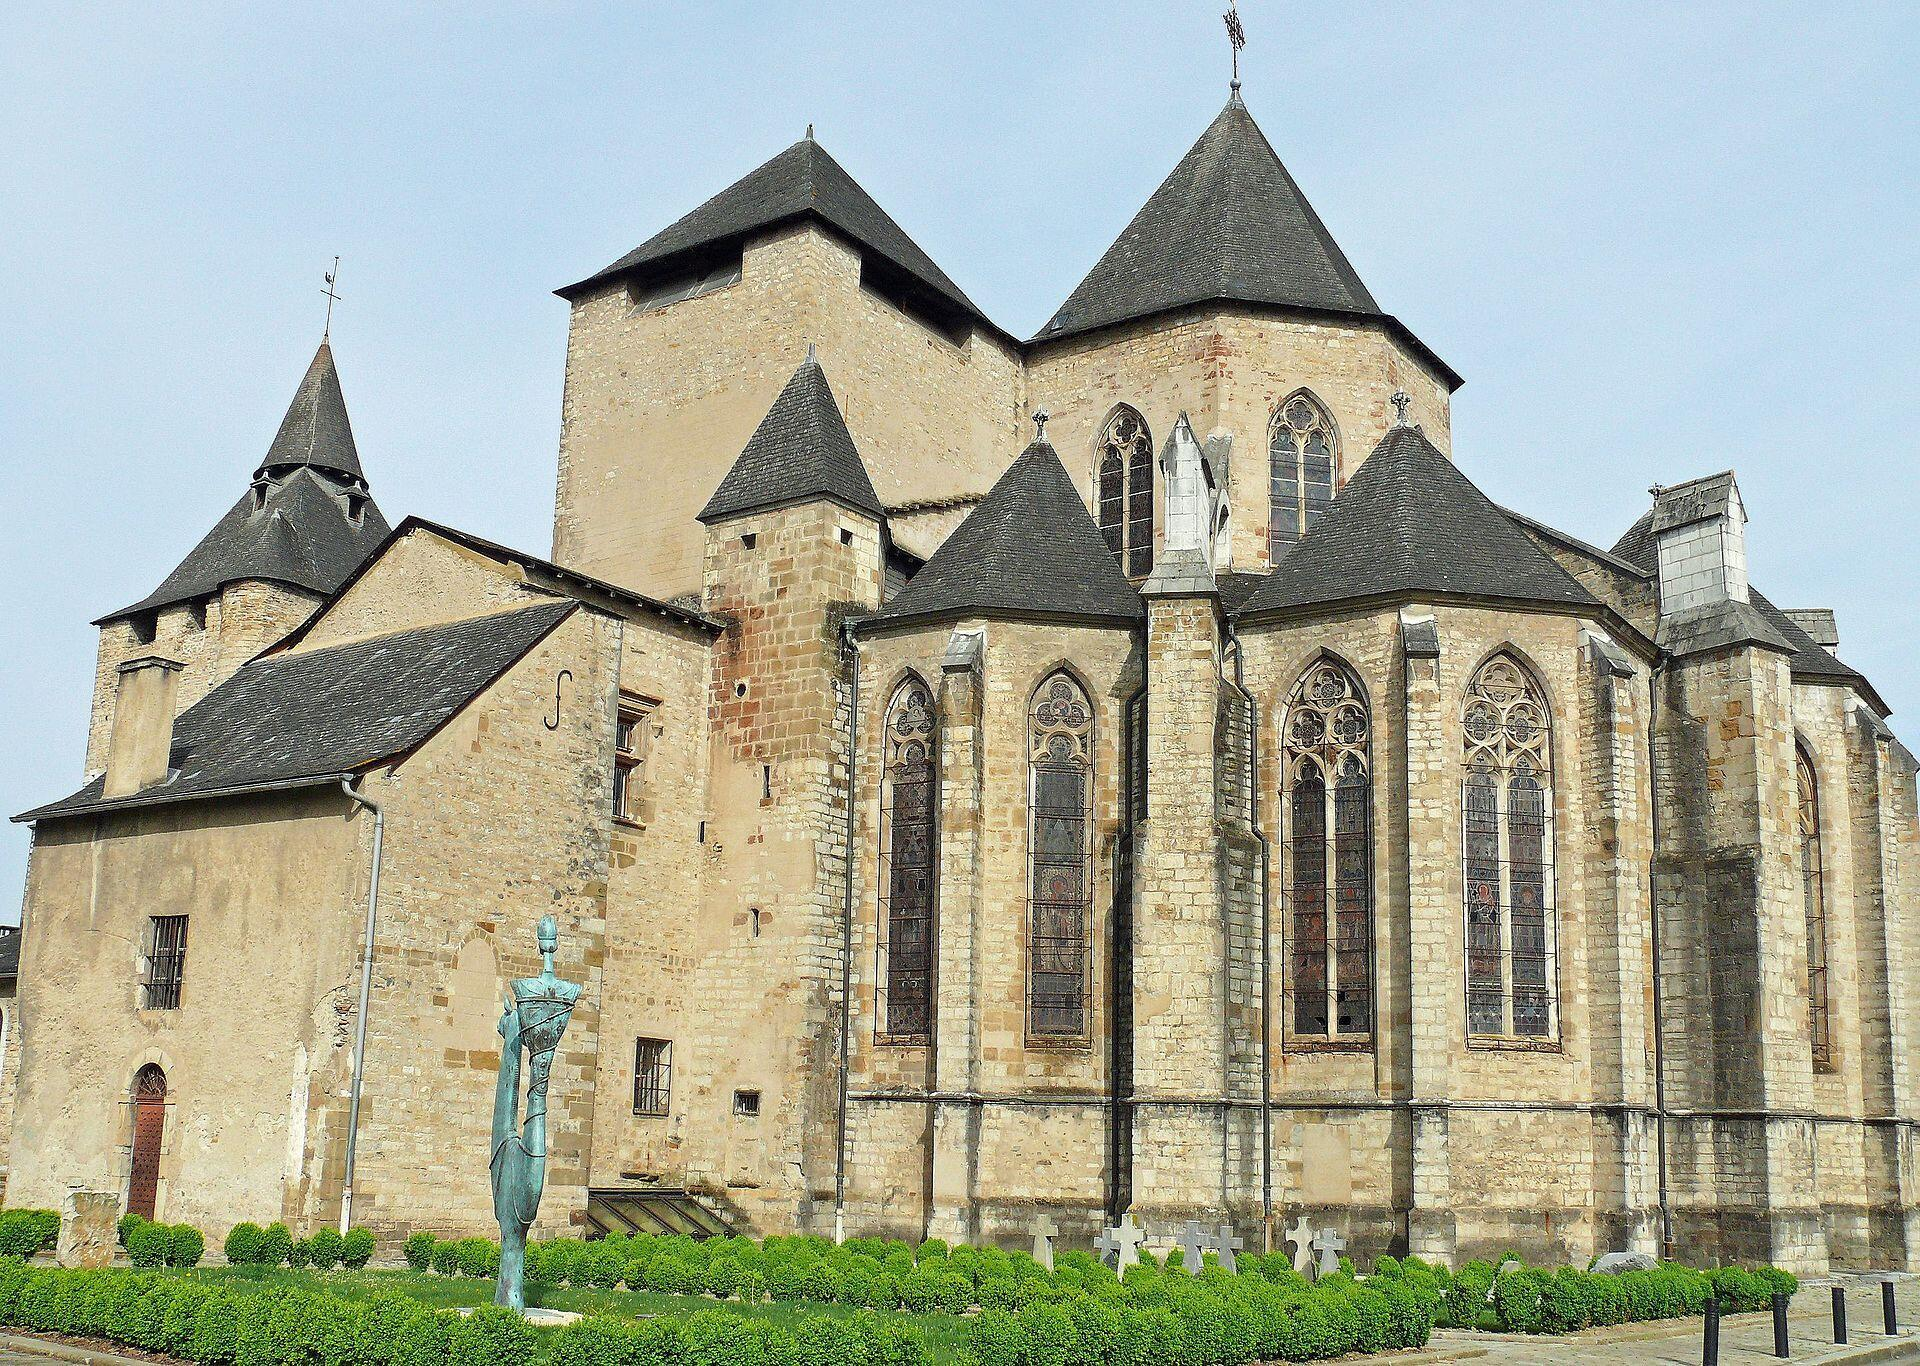 The Cathedral in Oloron-Sainte-Marie, pillaged by robbers on 3 November 2019